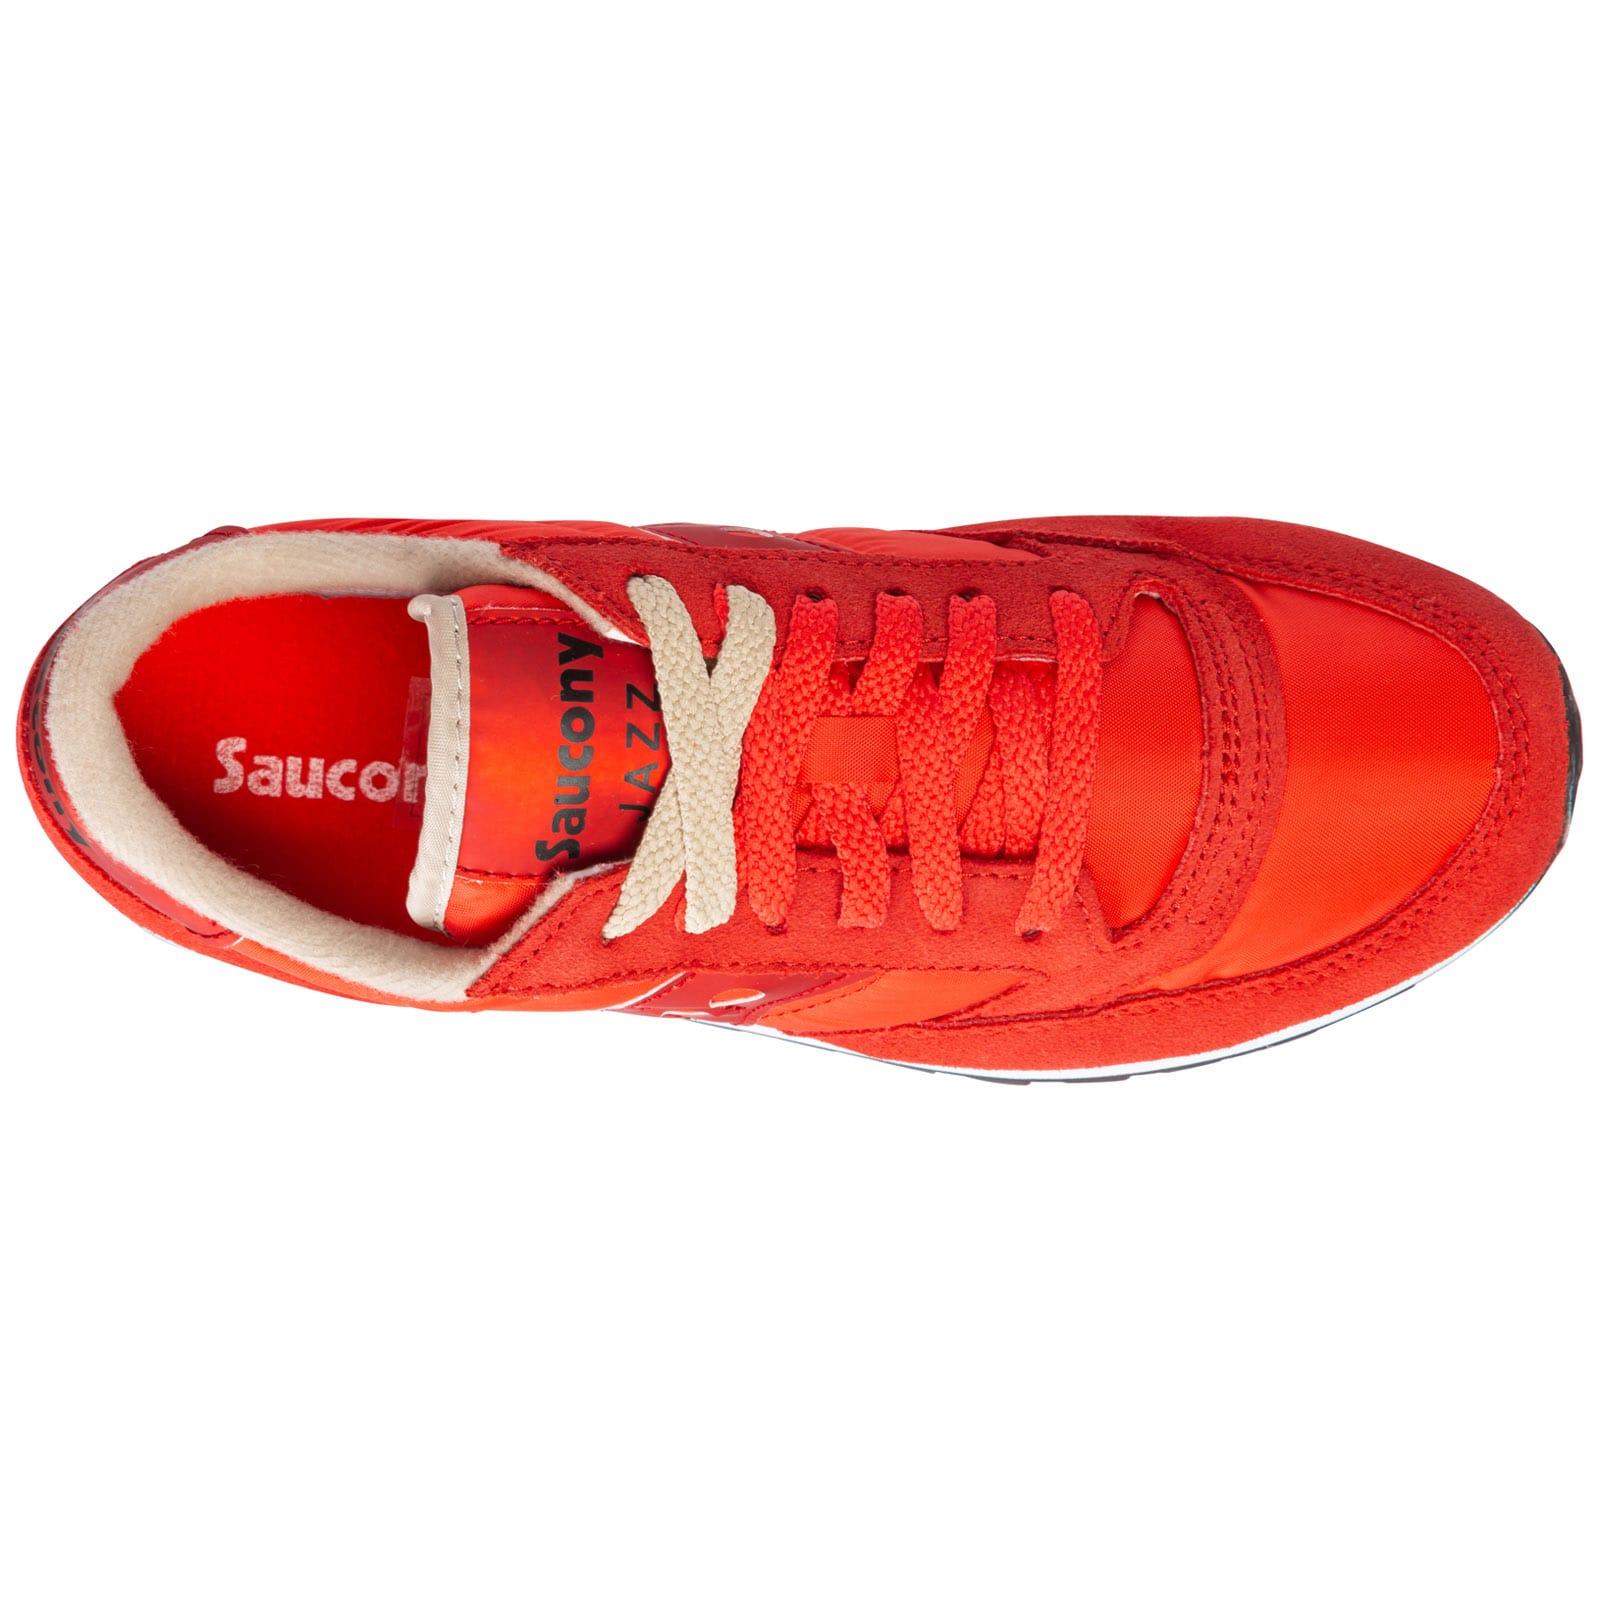 saucony jazz for sale philippines duty free